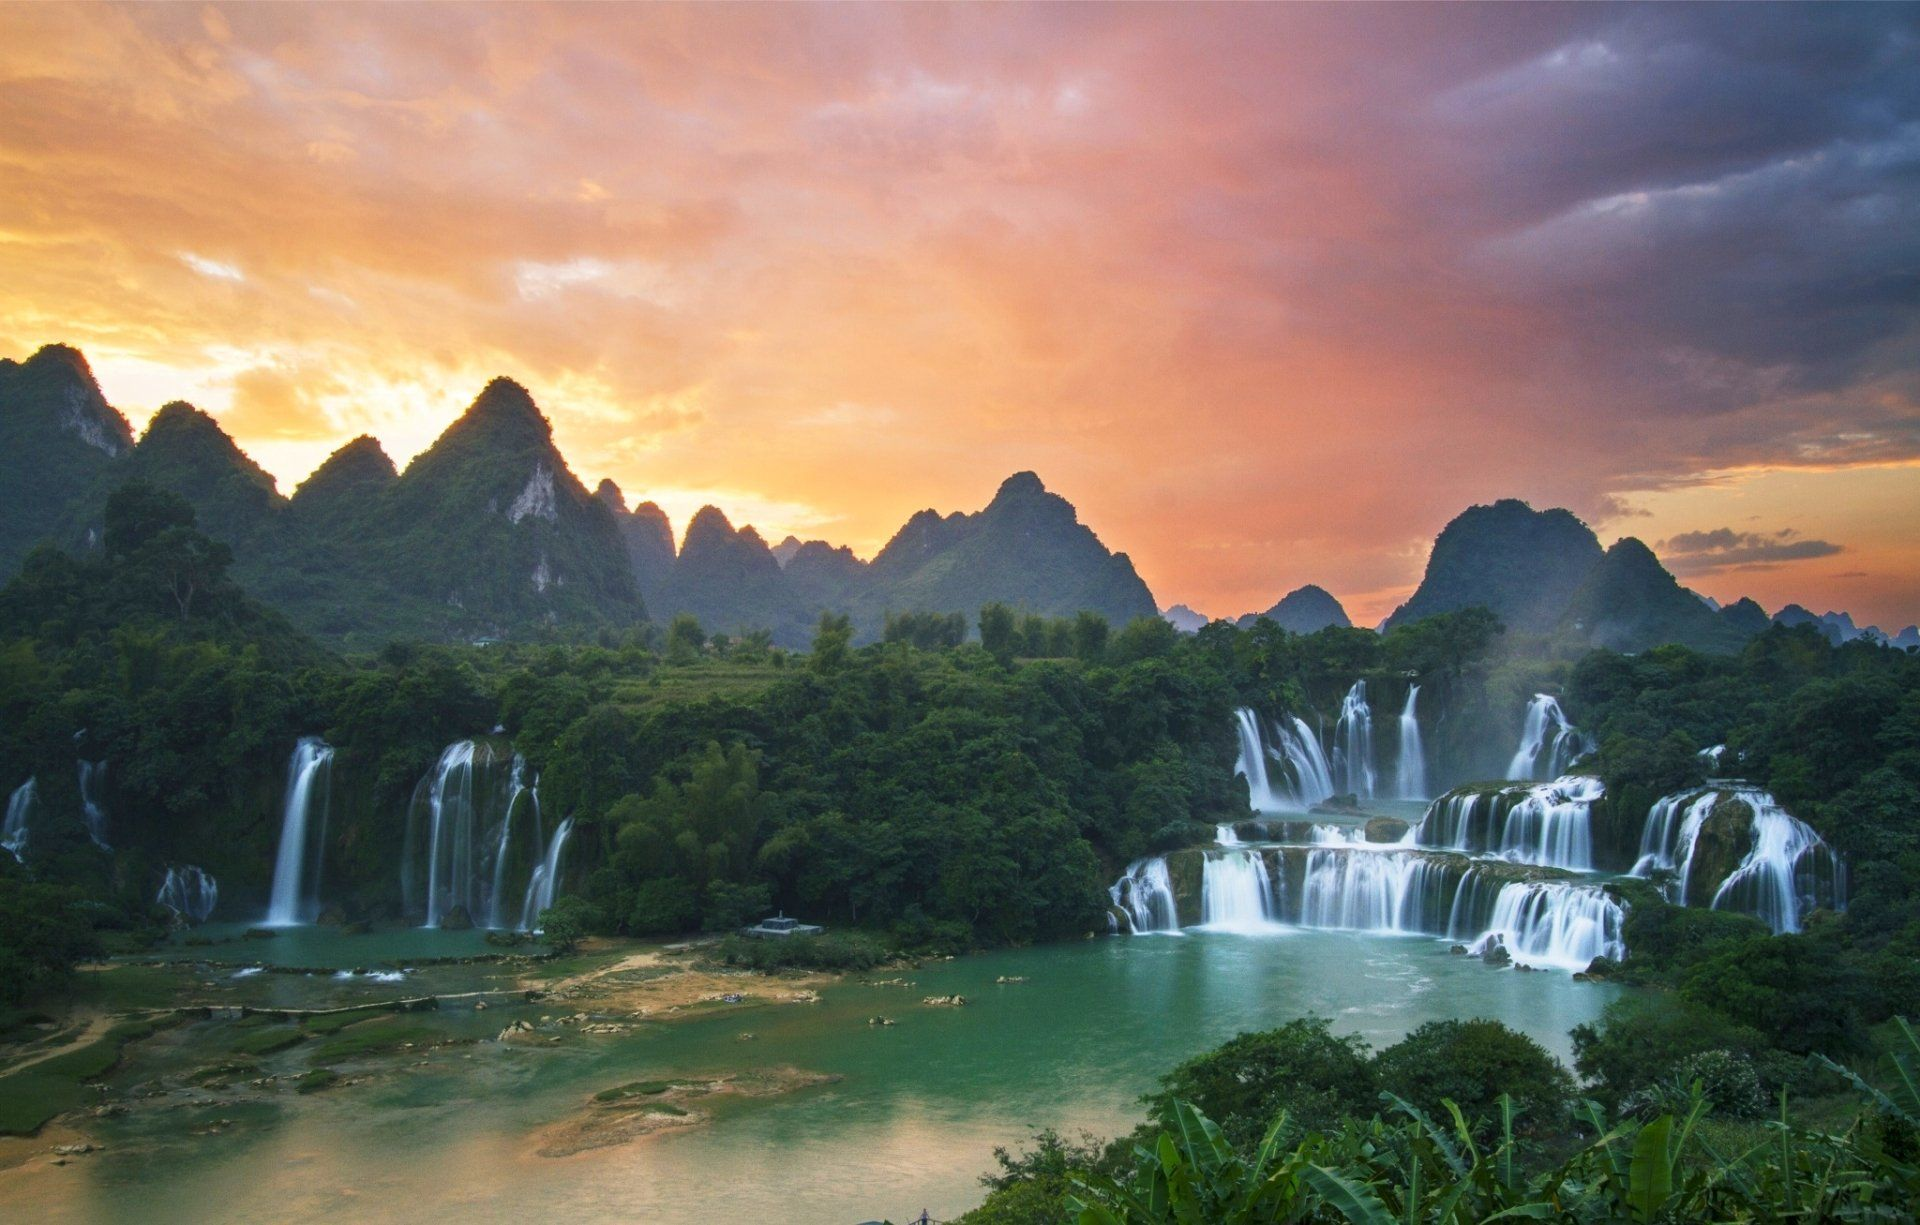 Earth Ban Gioc Detian Falls Quay Sơn River Guichin River Detian Falls Vietnam Mountain Sunset Wallpaper Waterfall Sunrises Nature River